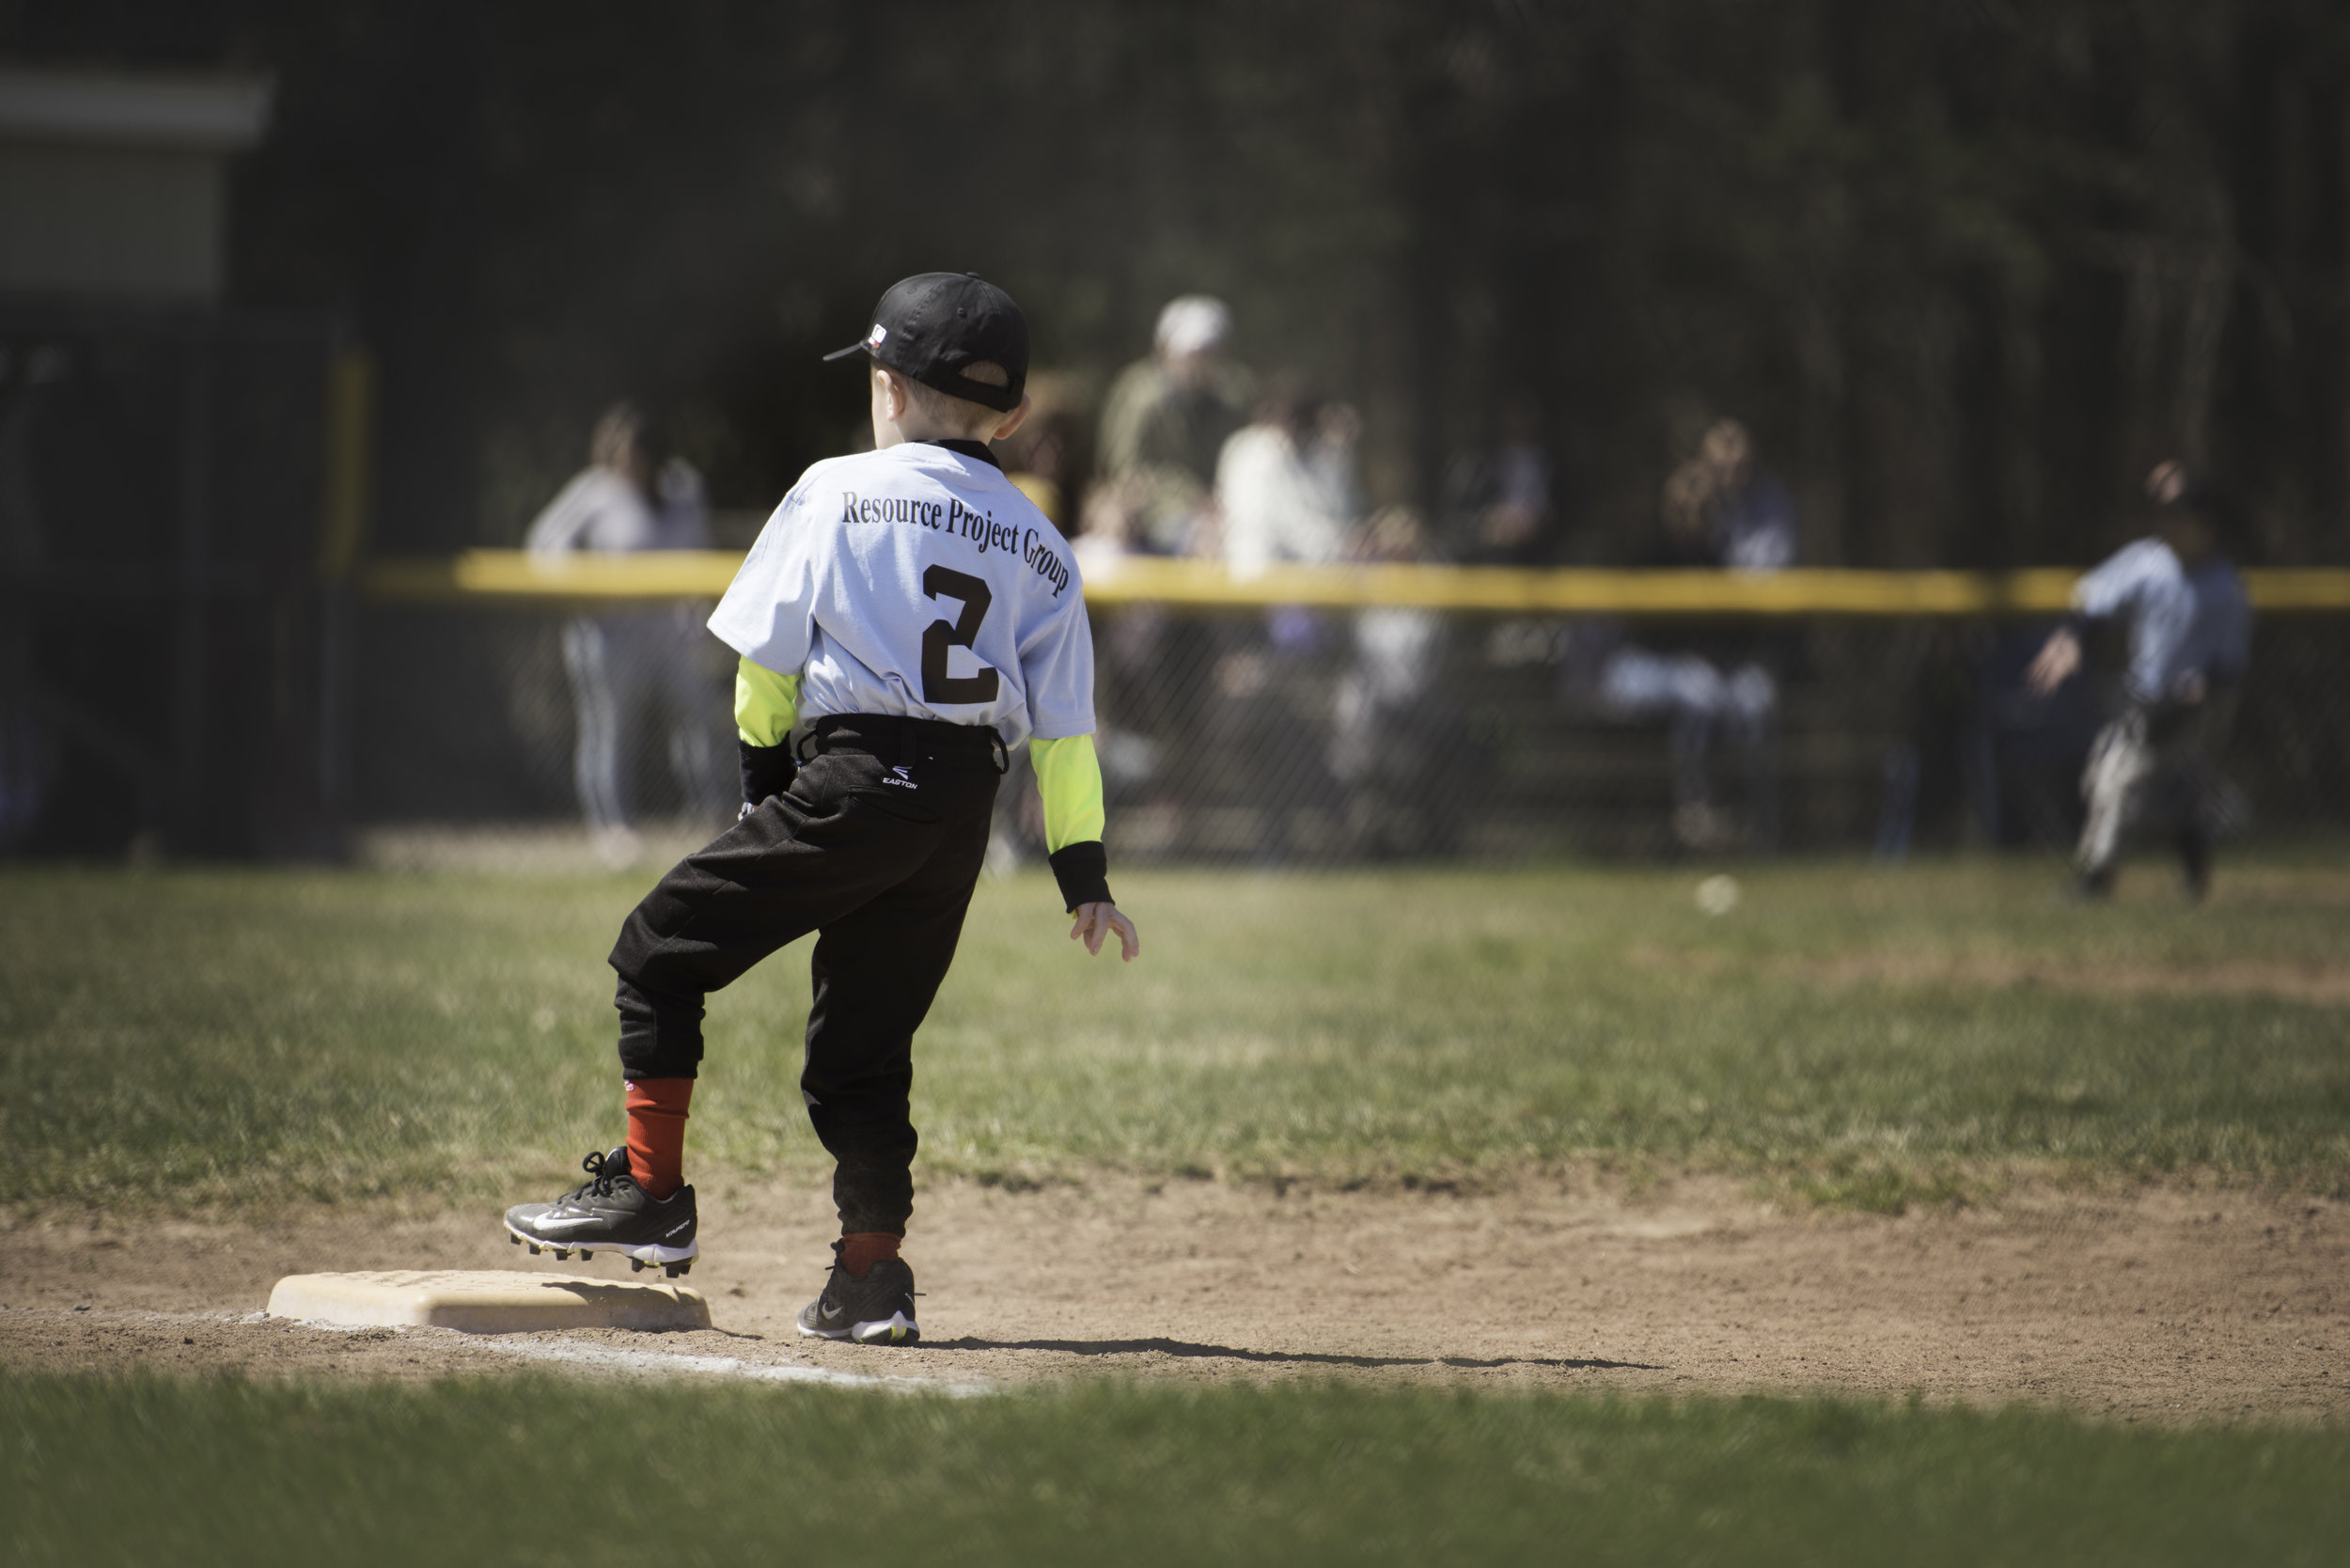 Easton Baseball Little League Running to Base